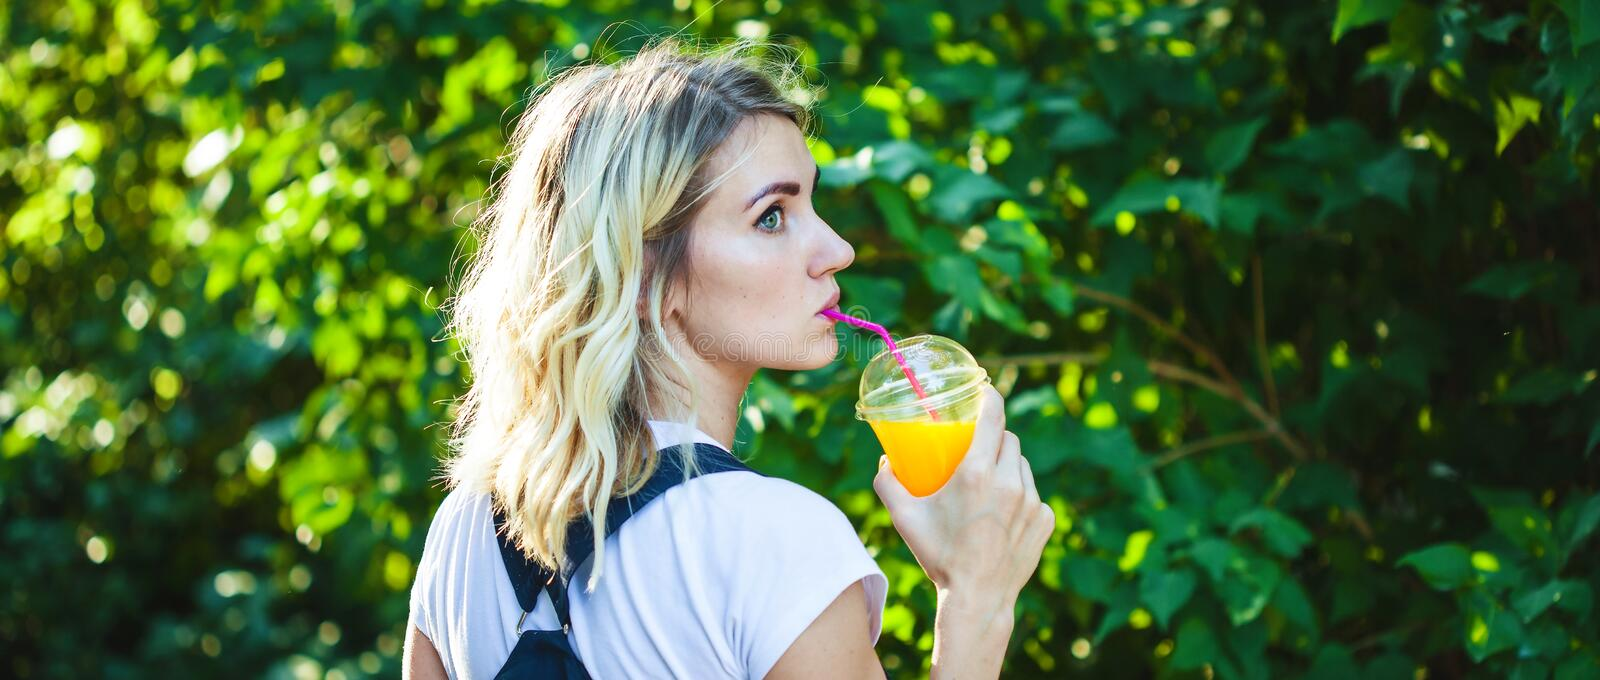 A girl drinks freshly squeezed juice, a healthy lifestyle Banner concept. stock photo